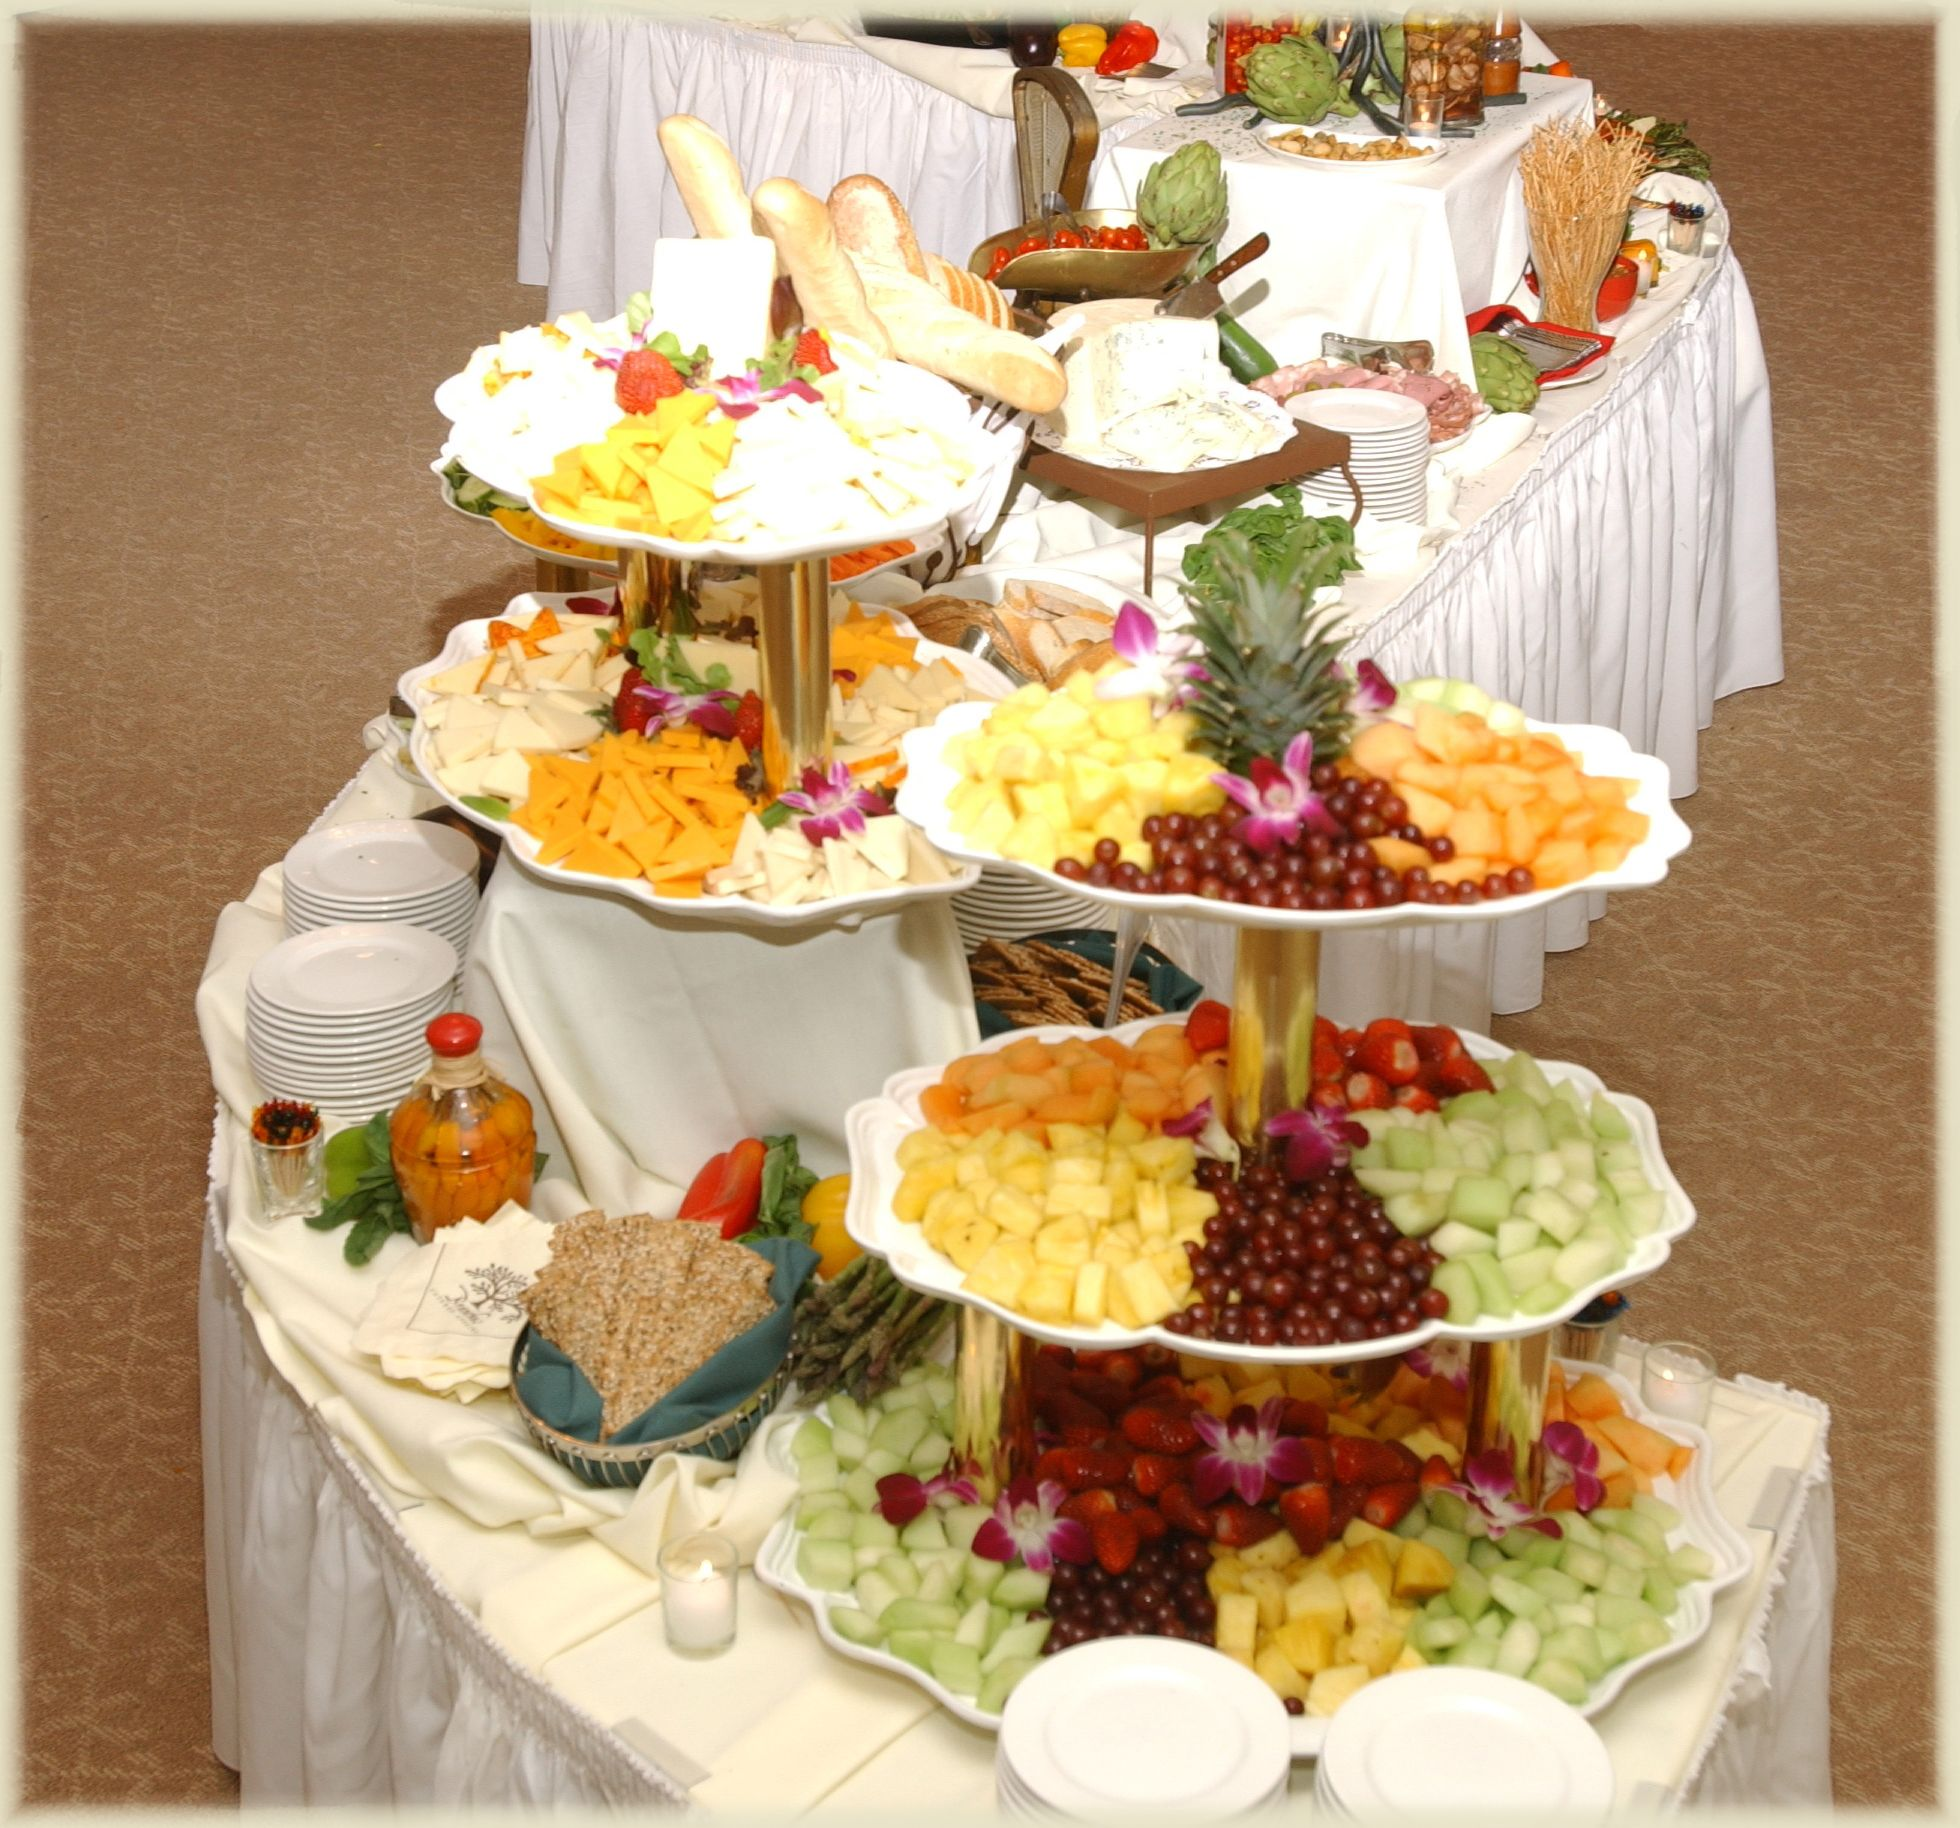 Wedding Reception Buffet Food Ideas: Social Events Menus From Branches